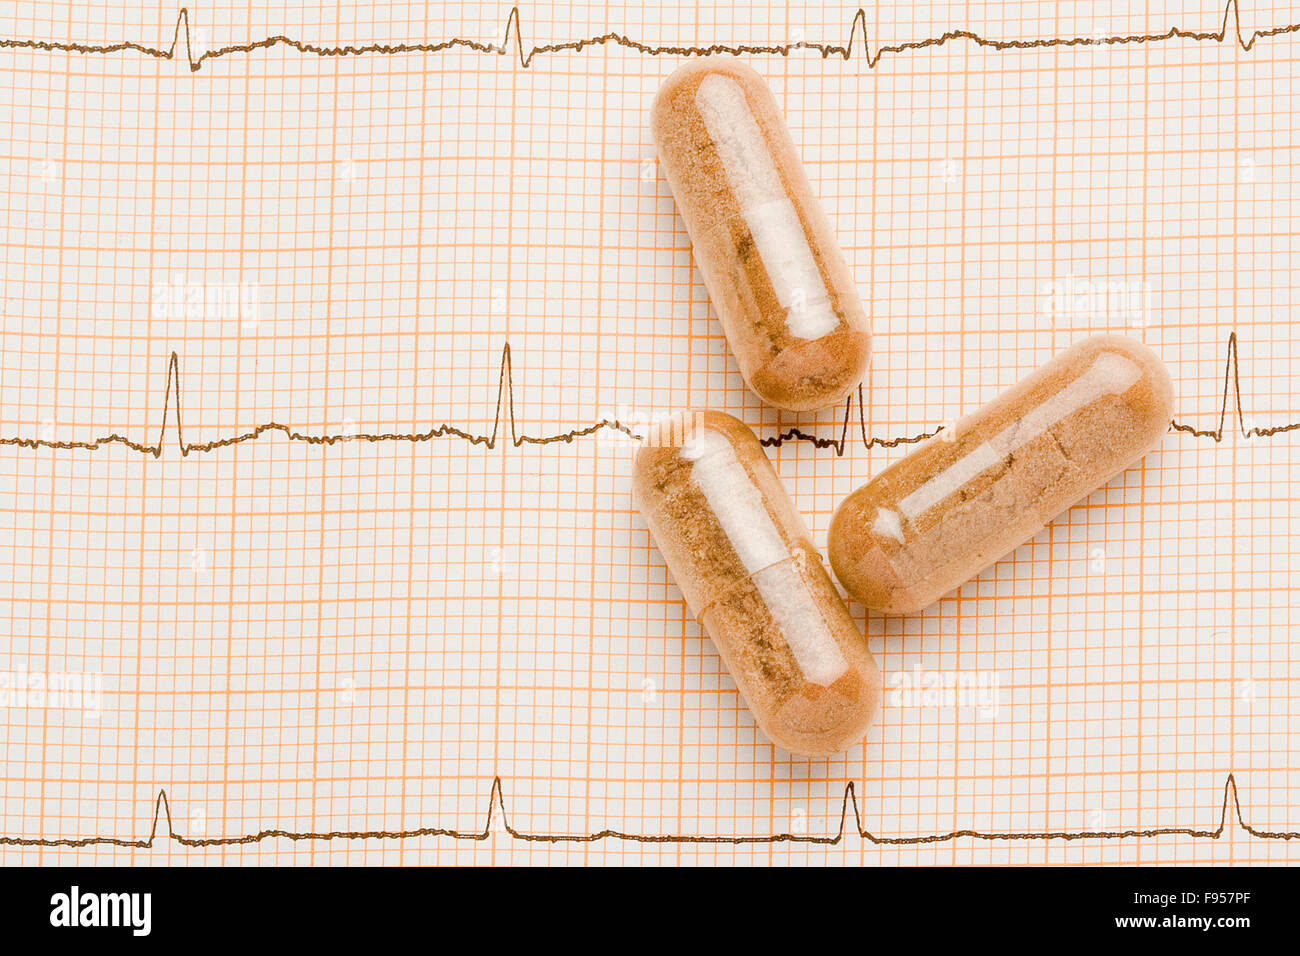 as measured by the patient's heartbeat and visual using drugs to stay healthy - Stock Image